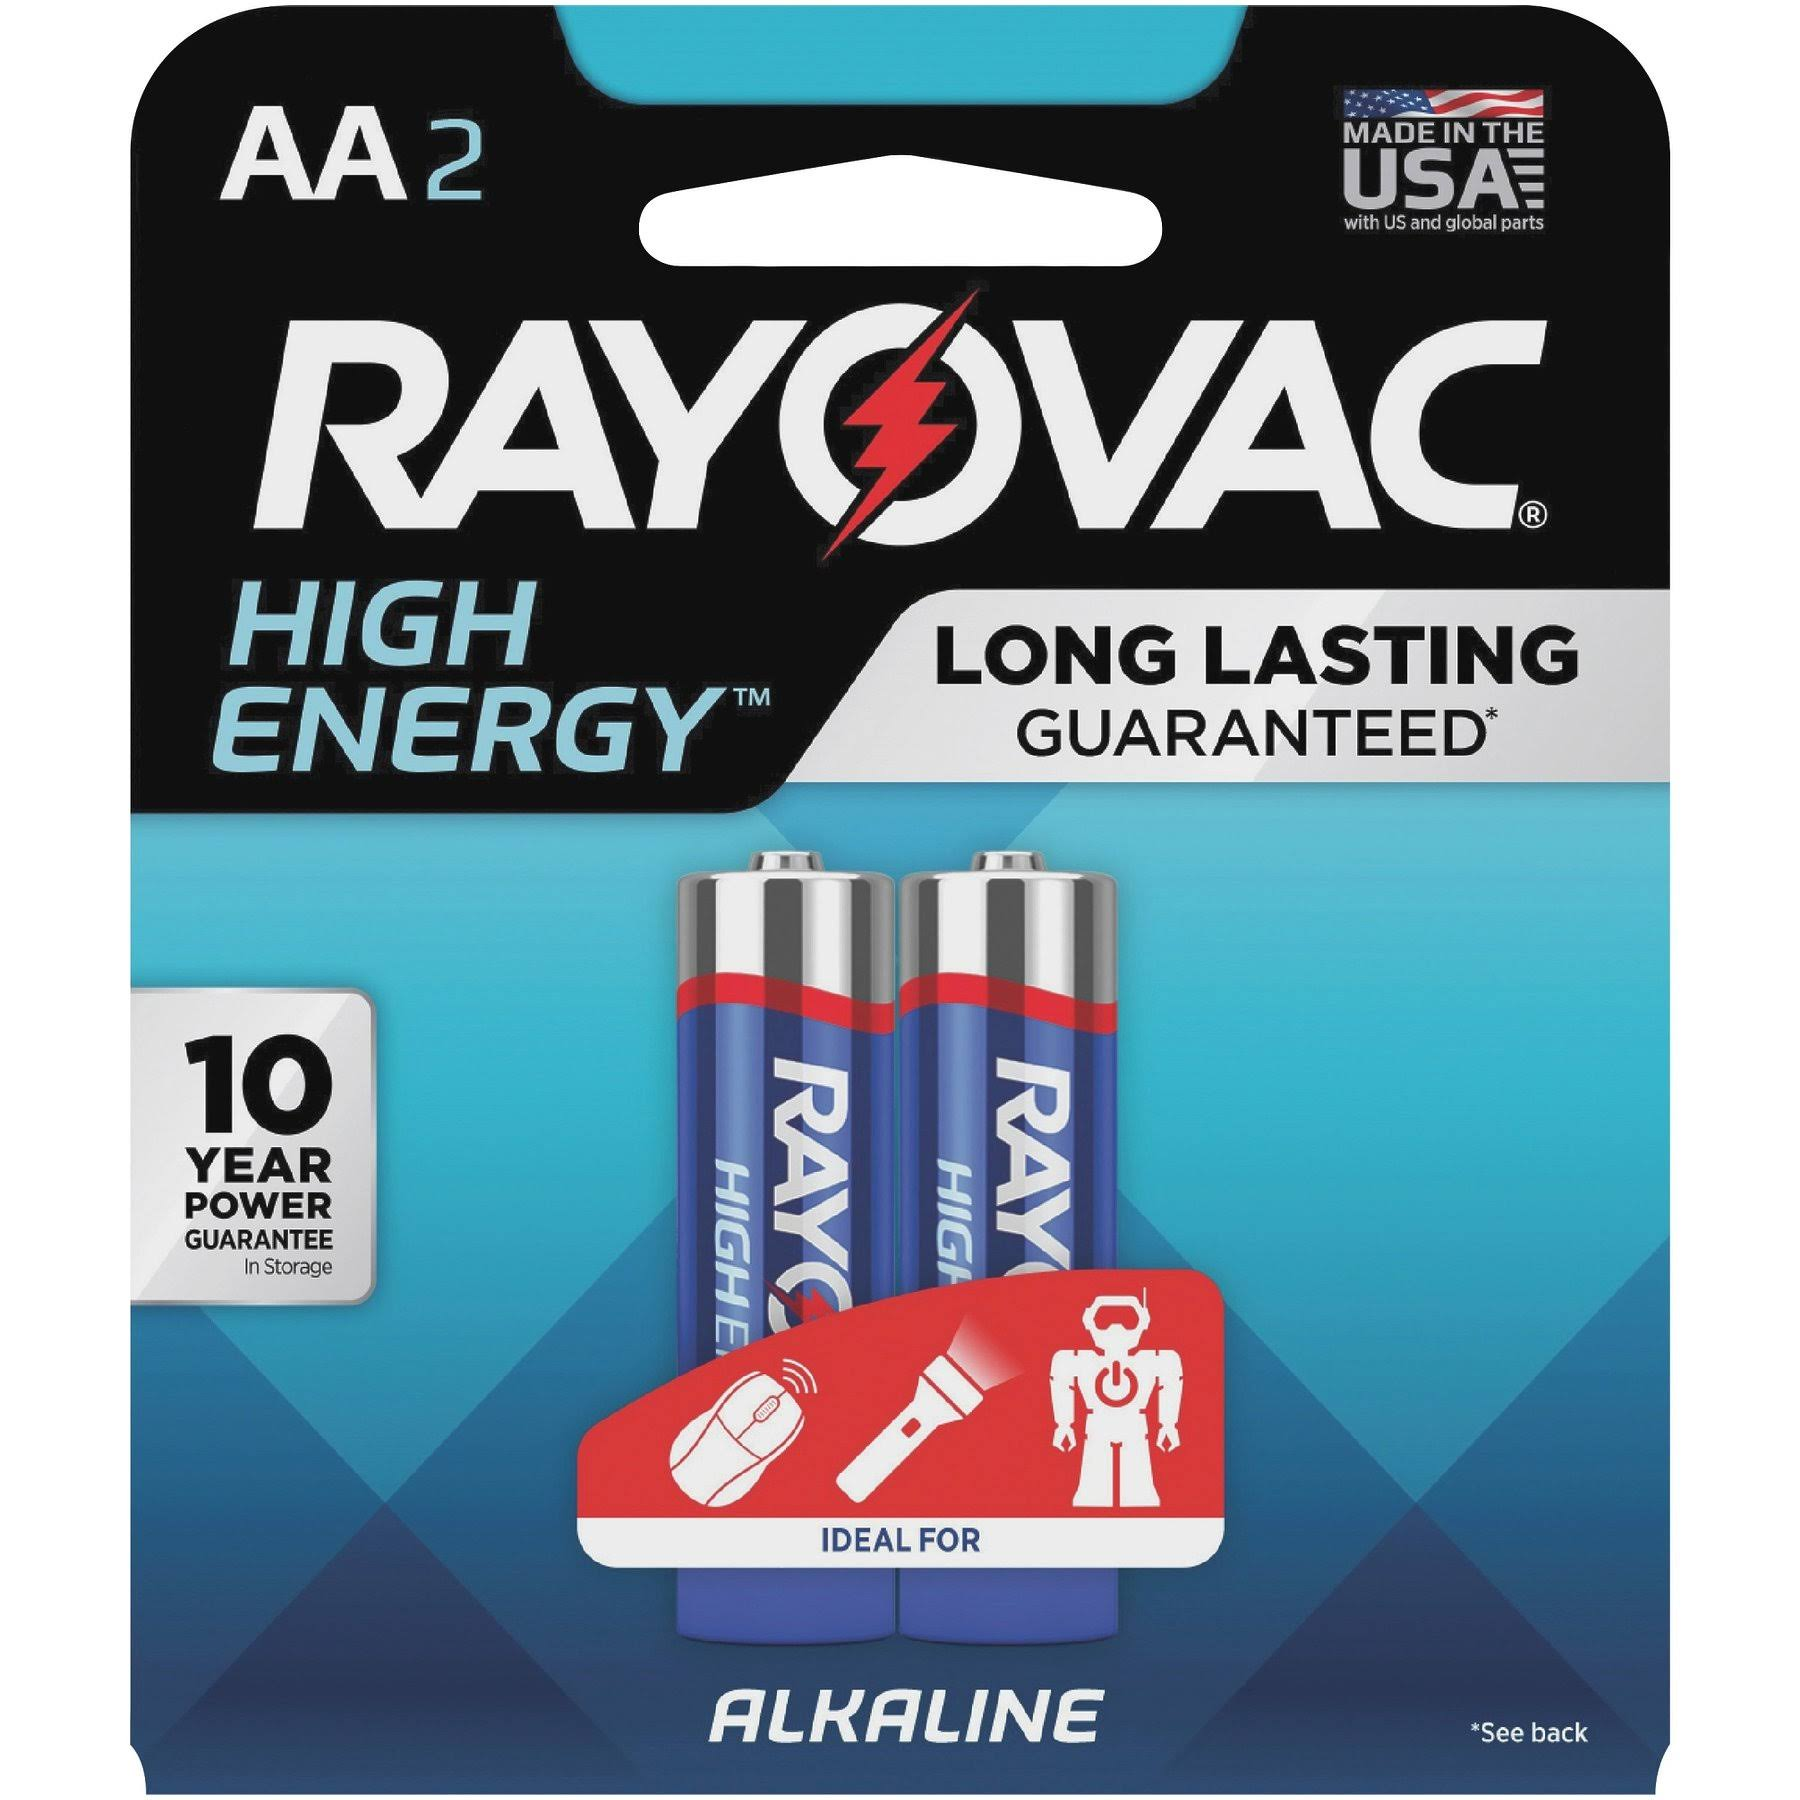 Rayovac Alkaline AA Batteries - 2 Pack